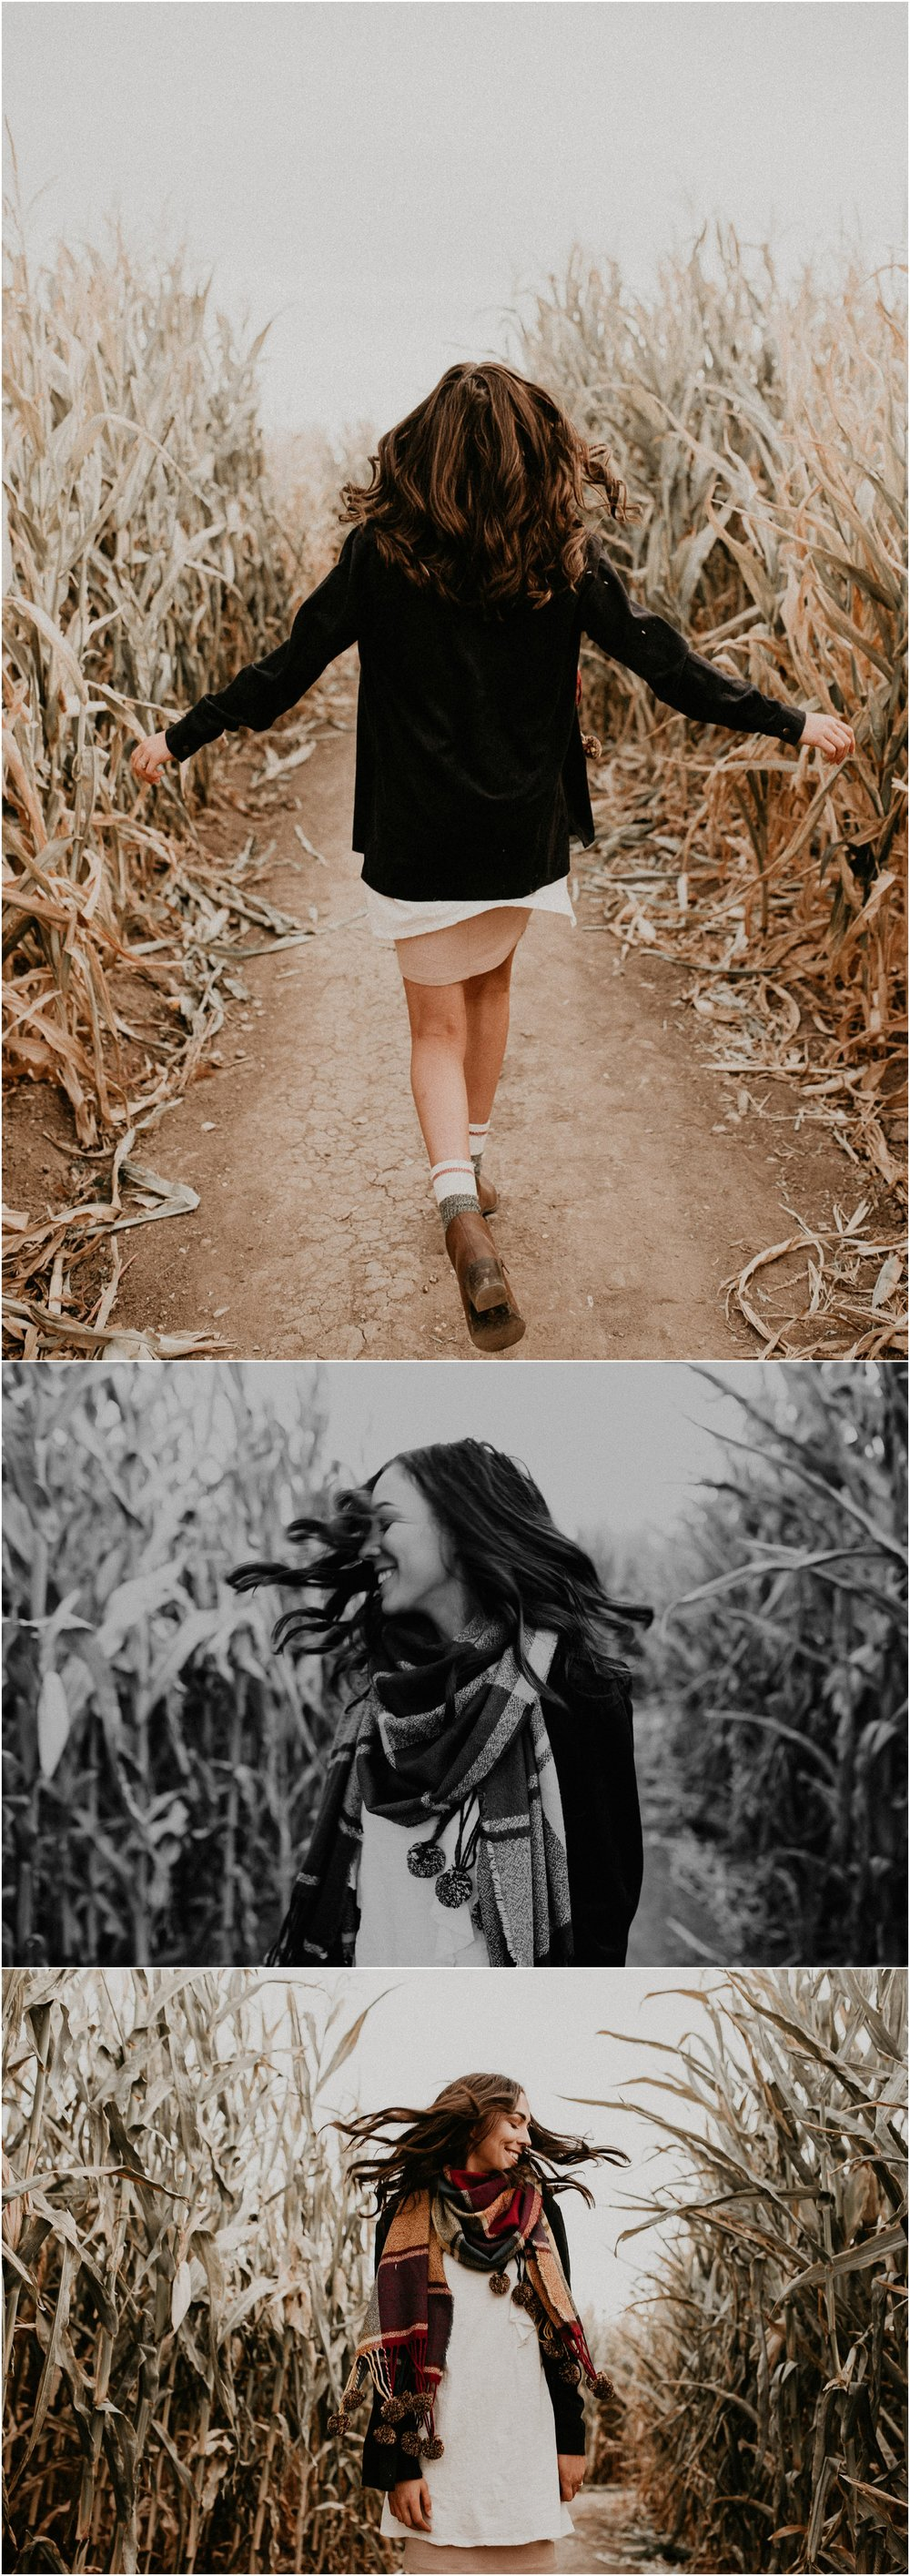 Boise Senior Boudoir Wedding Photographer Makayla Madden Photography Idaho Farmstead Corn Maze Fall Portrait Outfit Ideas Inspiration Plaid Scarf Pumpkin Patch Hair Flips Running